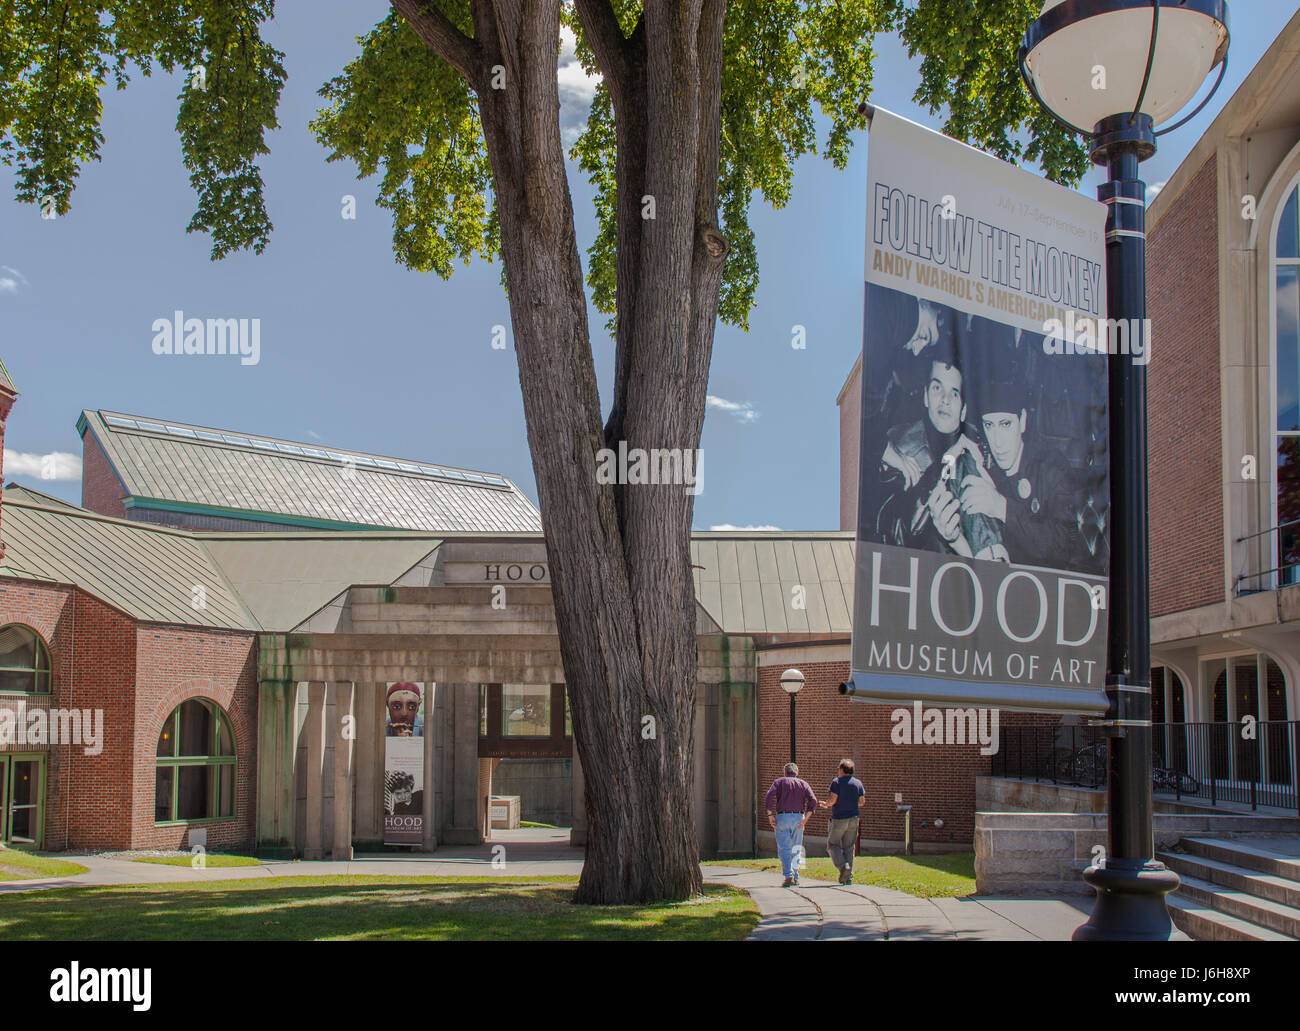 The Hood Museum at Dartmouth College in Hanover, New Hampshire Stock Photo